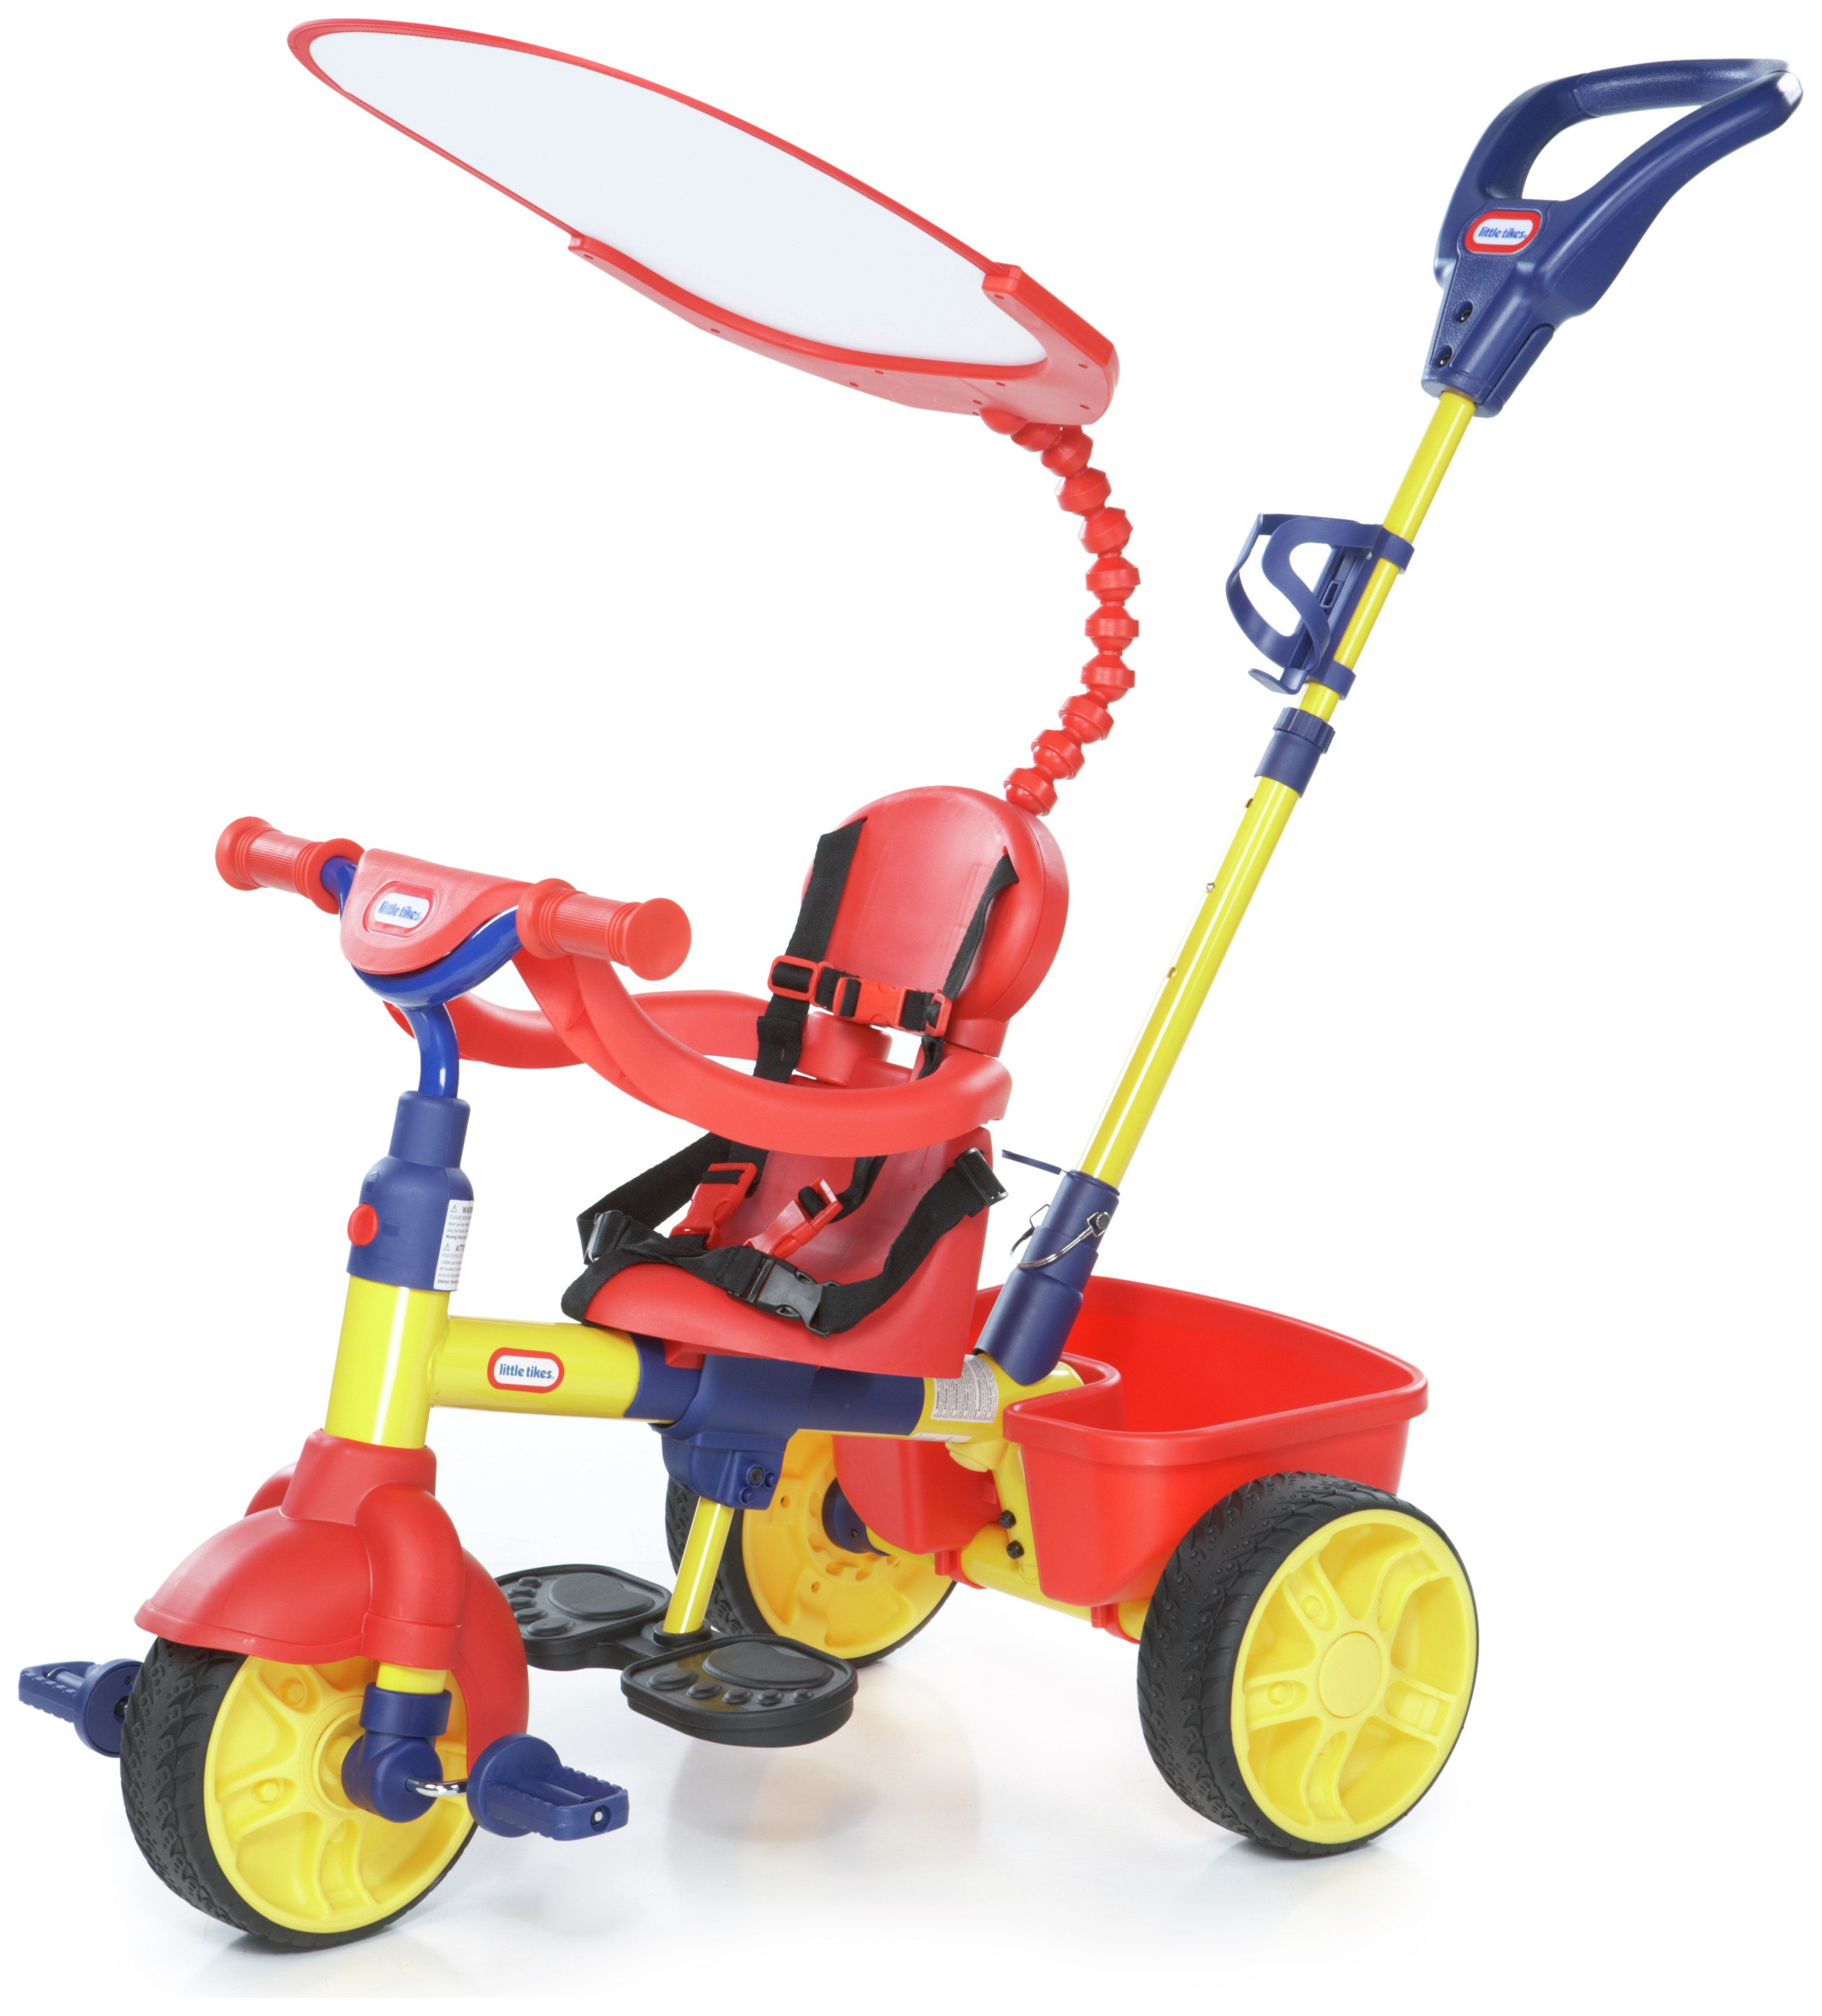 Image of Little Tikes - 4 in 1 Trike - Primary